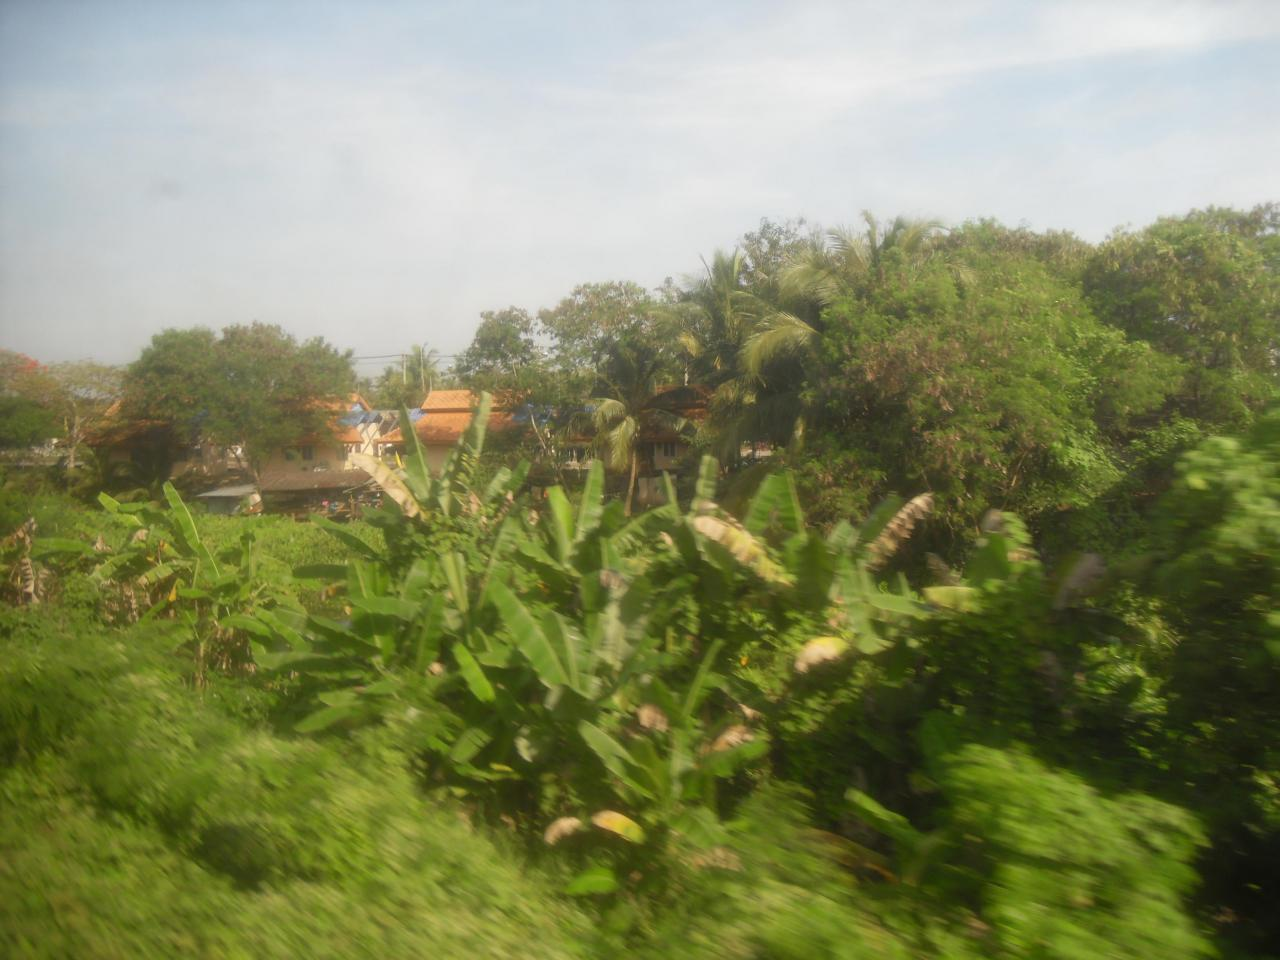 Another view from the train to Surat Thani